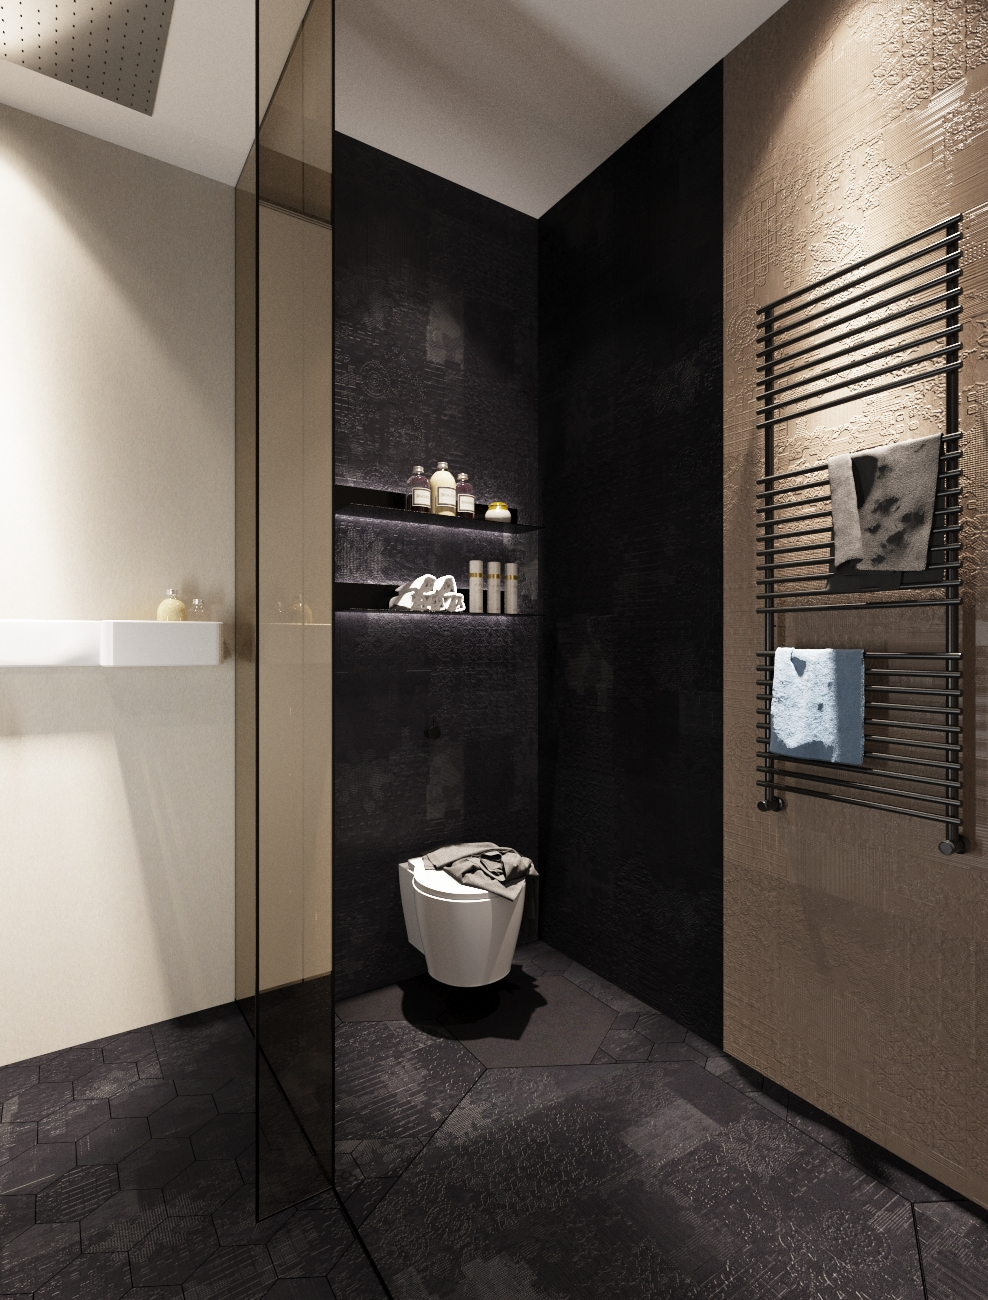 Stone Tile Bathroom - 3 examples of modern simplicity